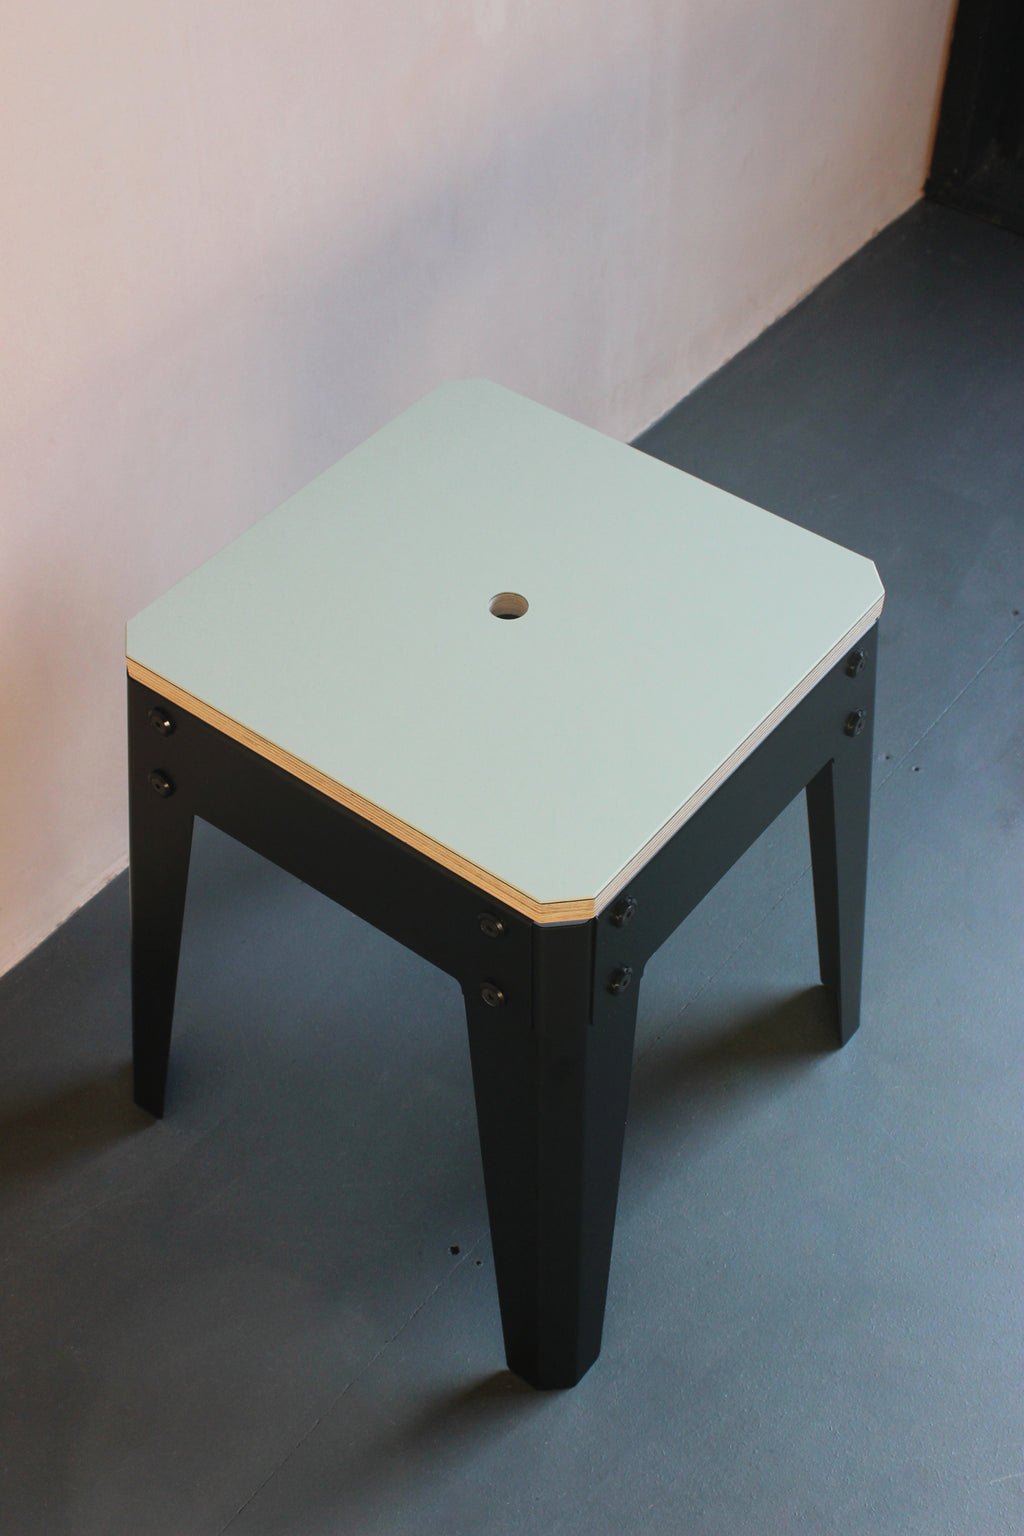 Our low stool is designed and made by Jon Grant London in Leyton, East London. It features metal powder coated legs with Forbo lino top.